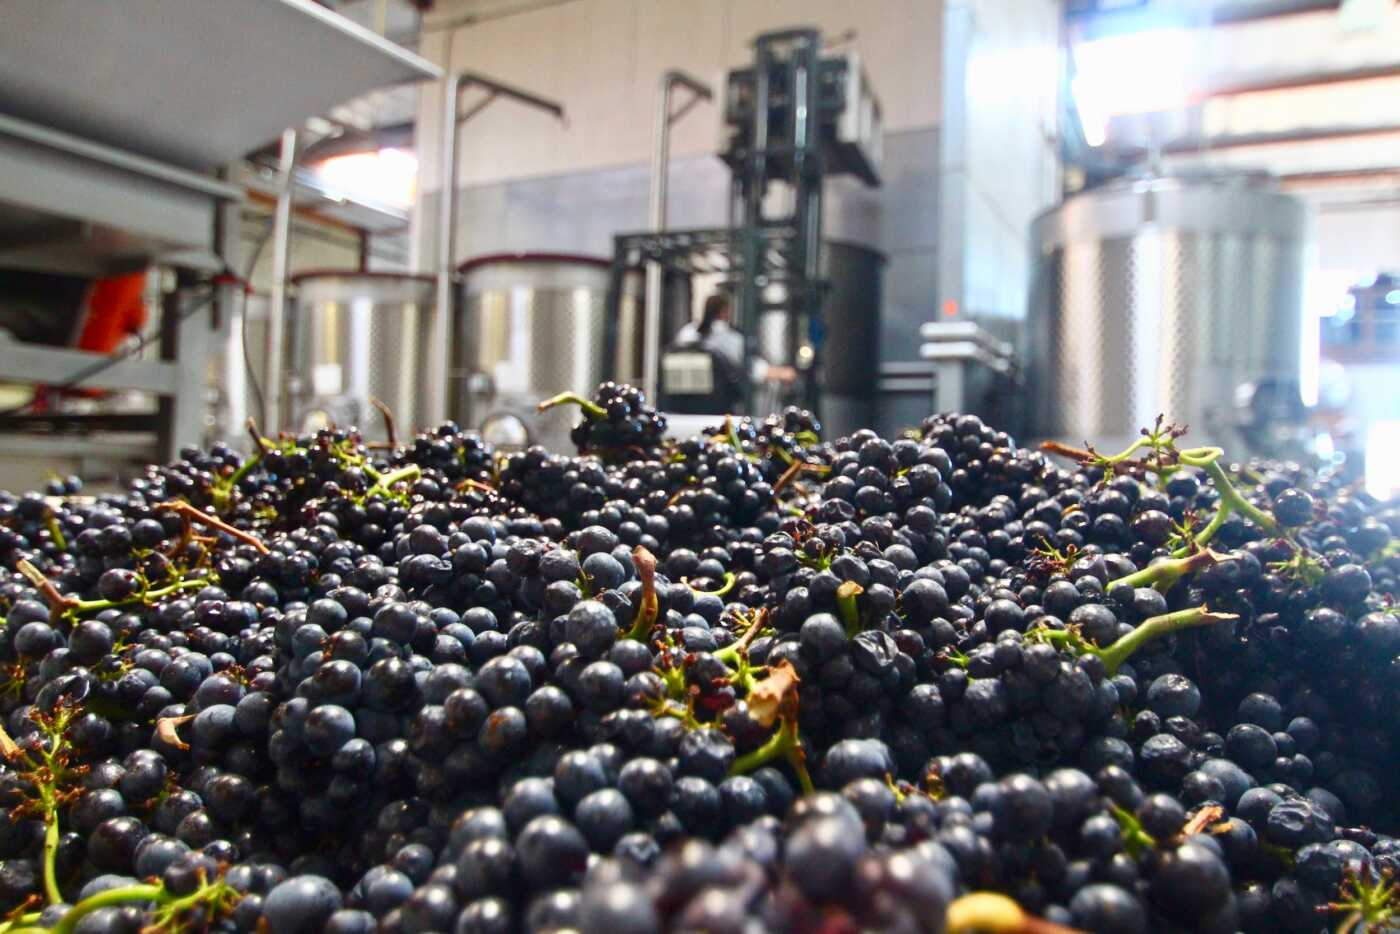 pile of grapes with forklift in background